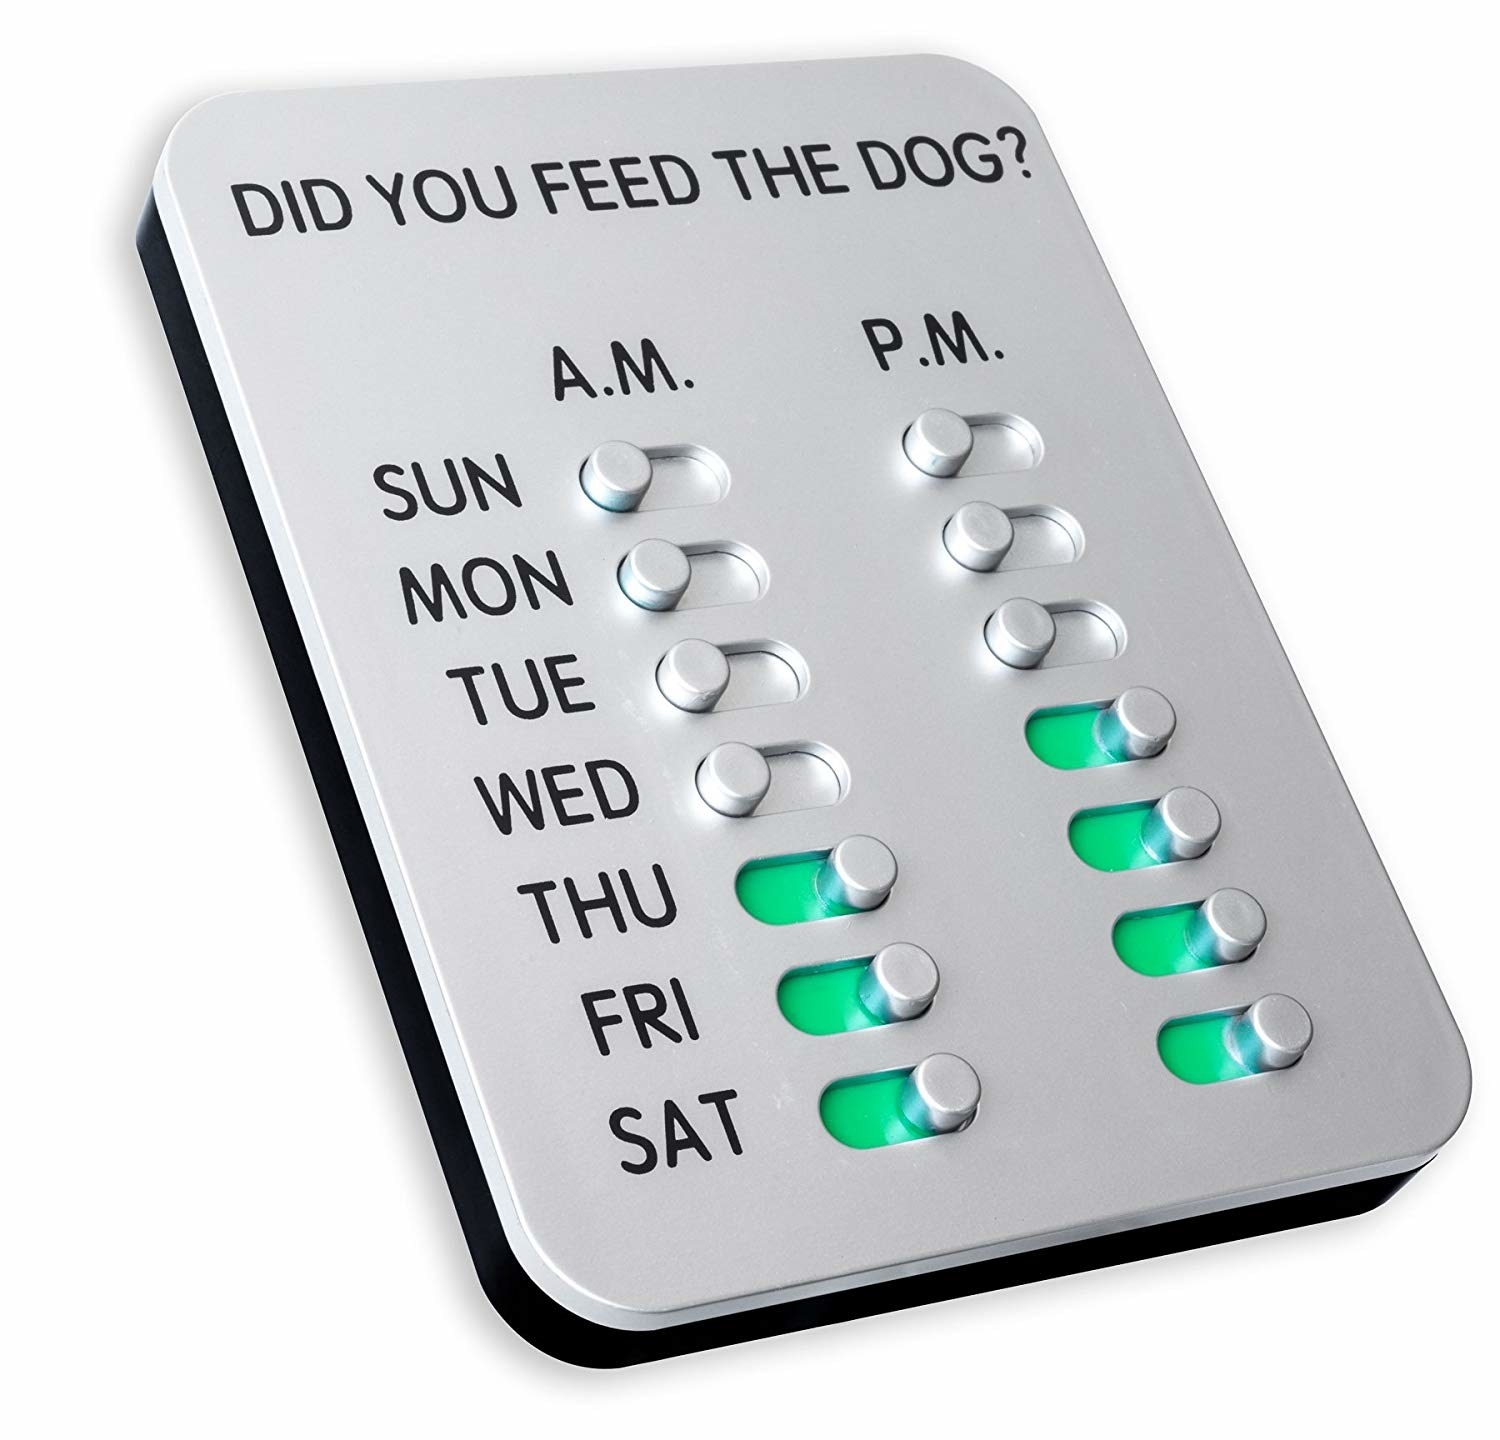 a device with two sliders for each day of the week. when pushed, they turn green